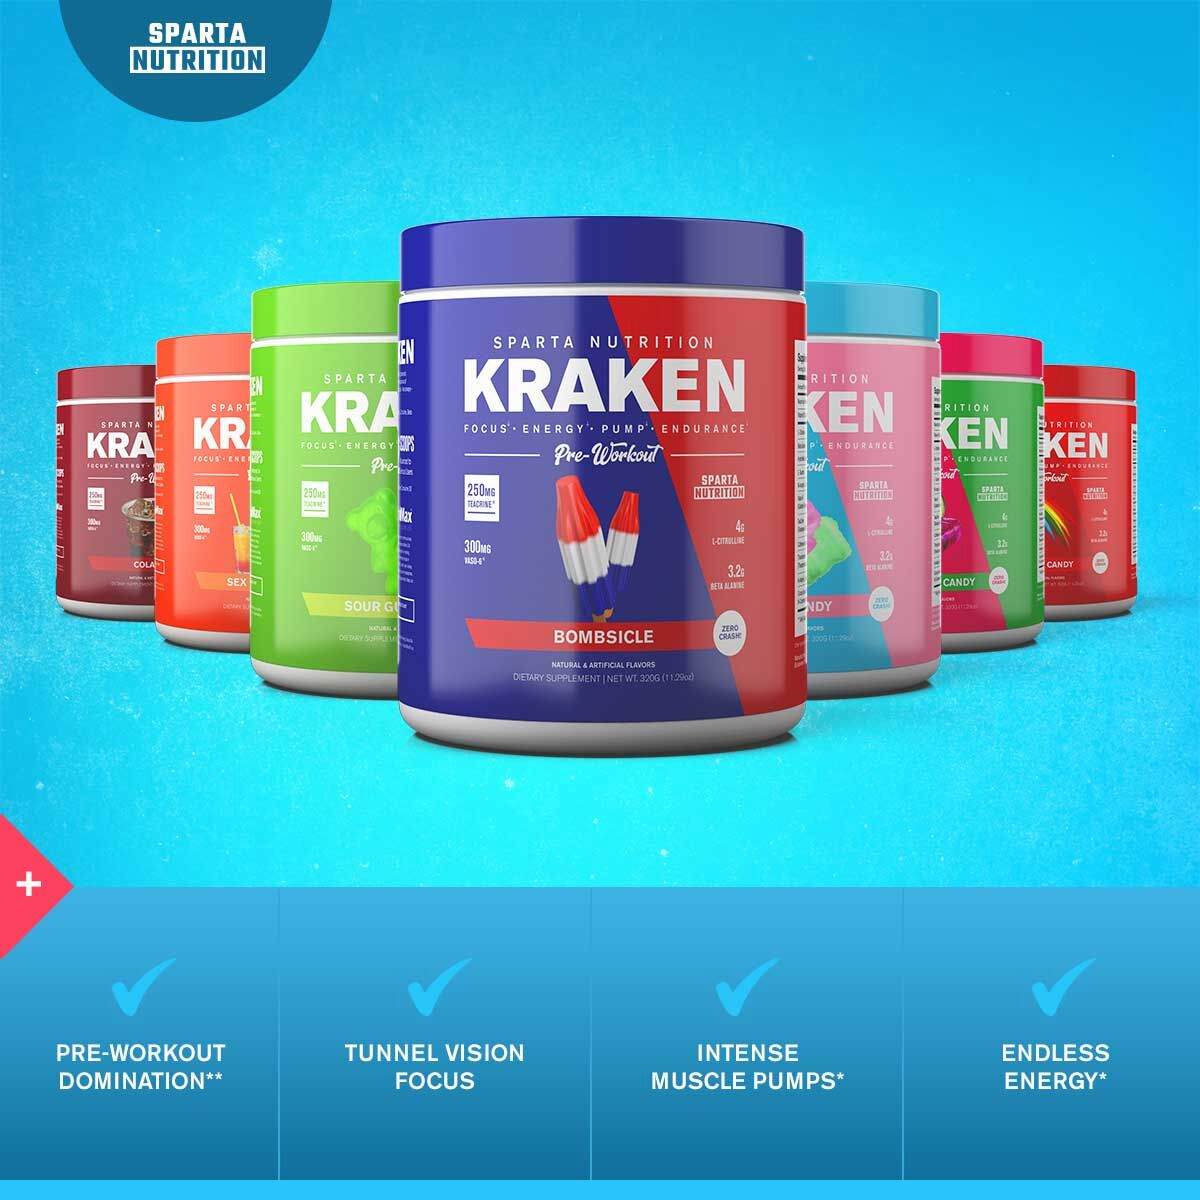 Sparta Nutrition Kraken Benefits